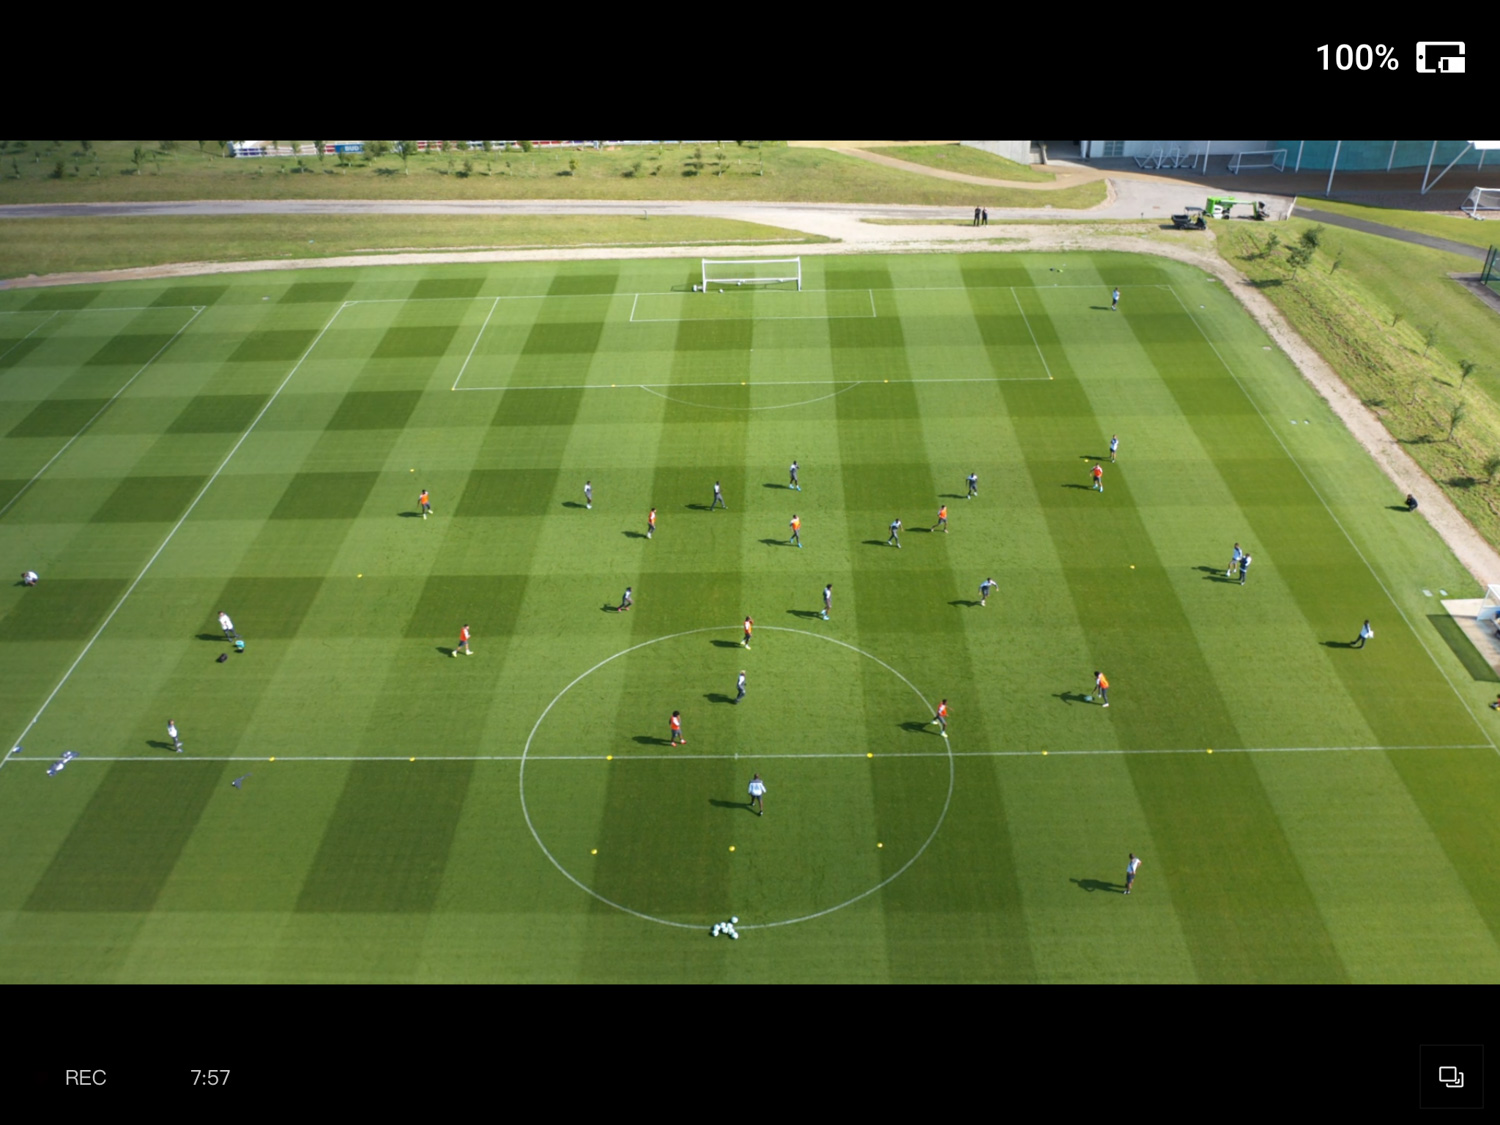 drone_filming_aerial_imagery_north_wales_ogc_nice-2.jpg